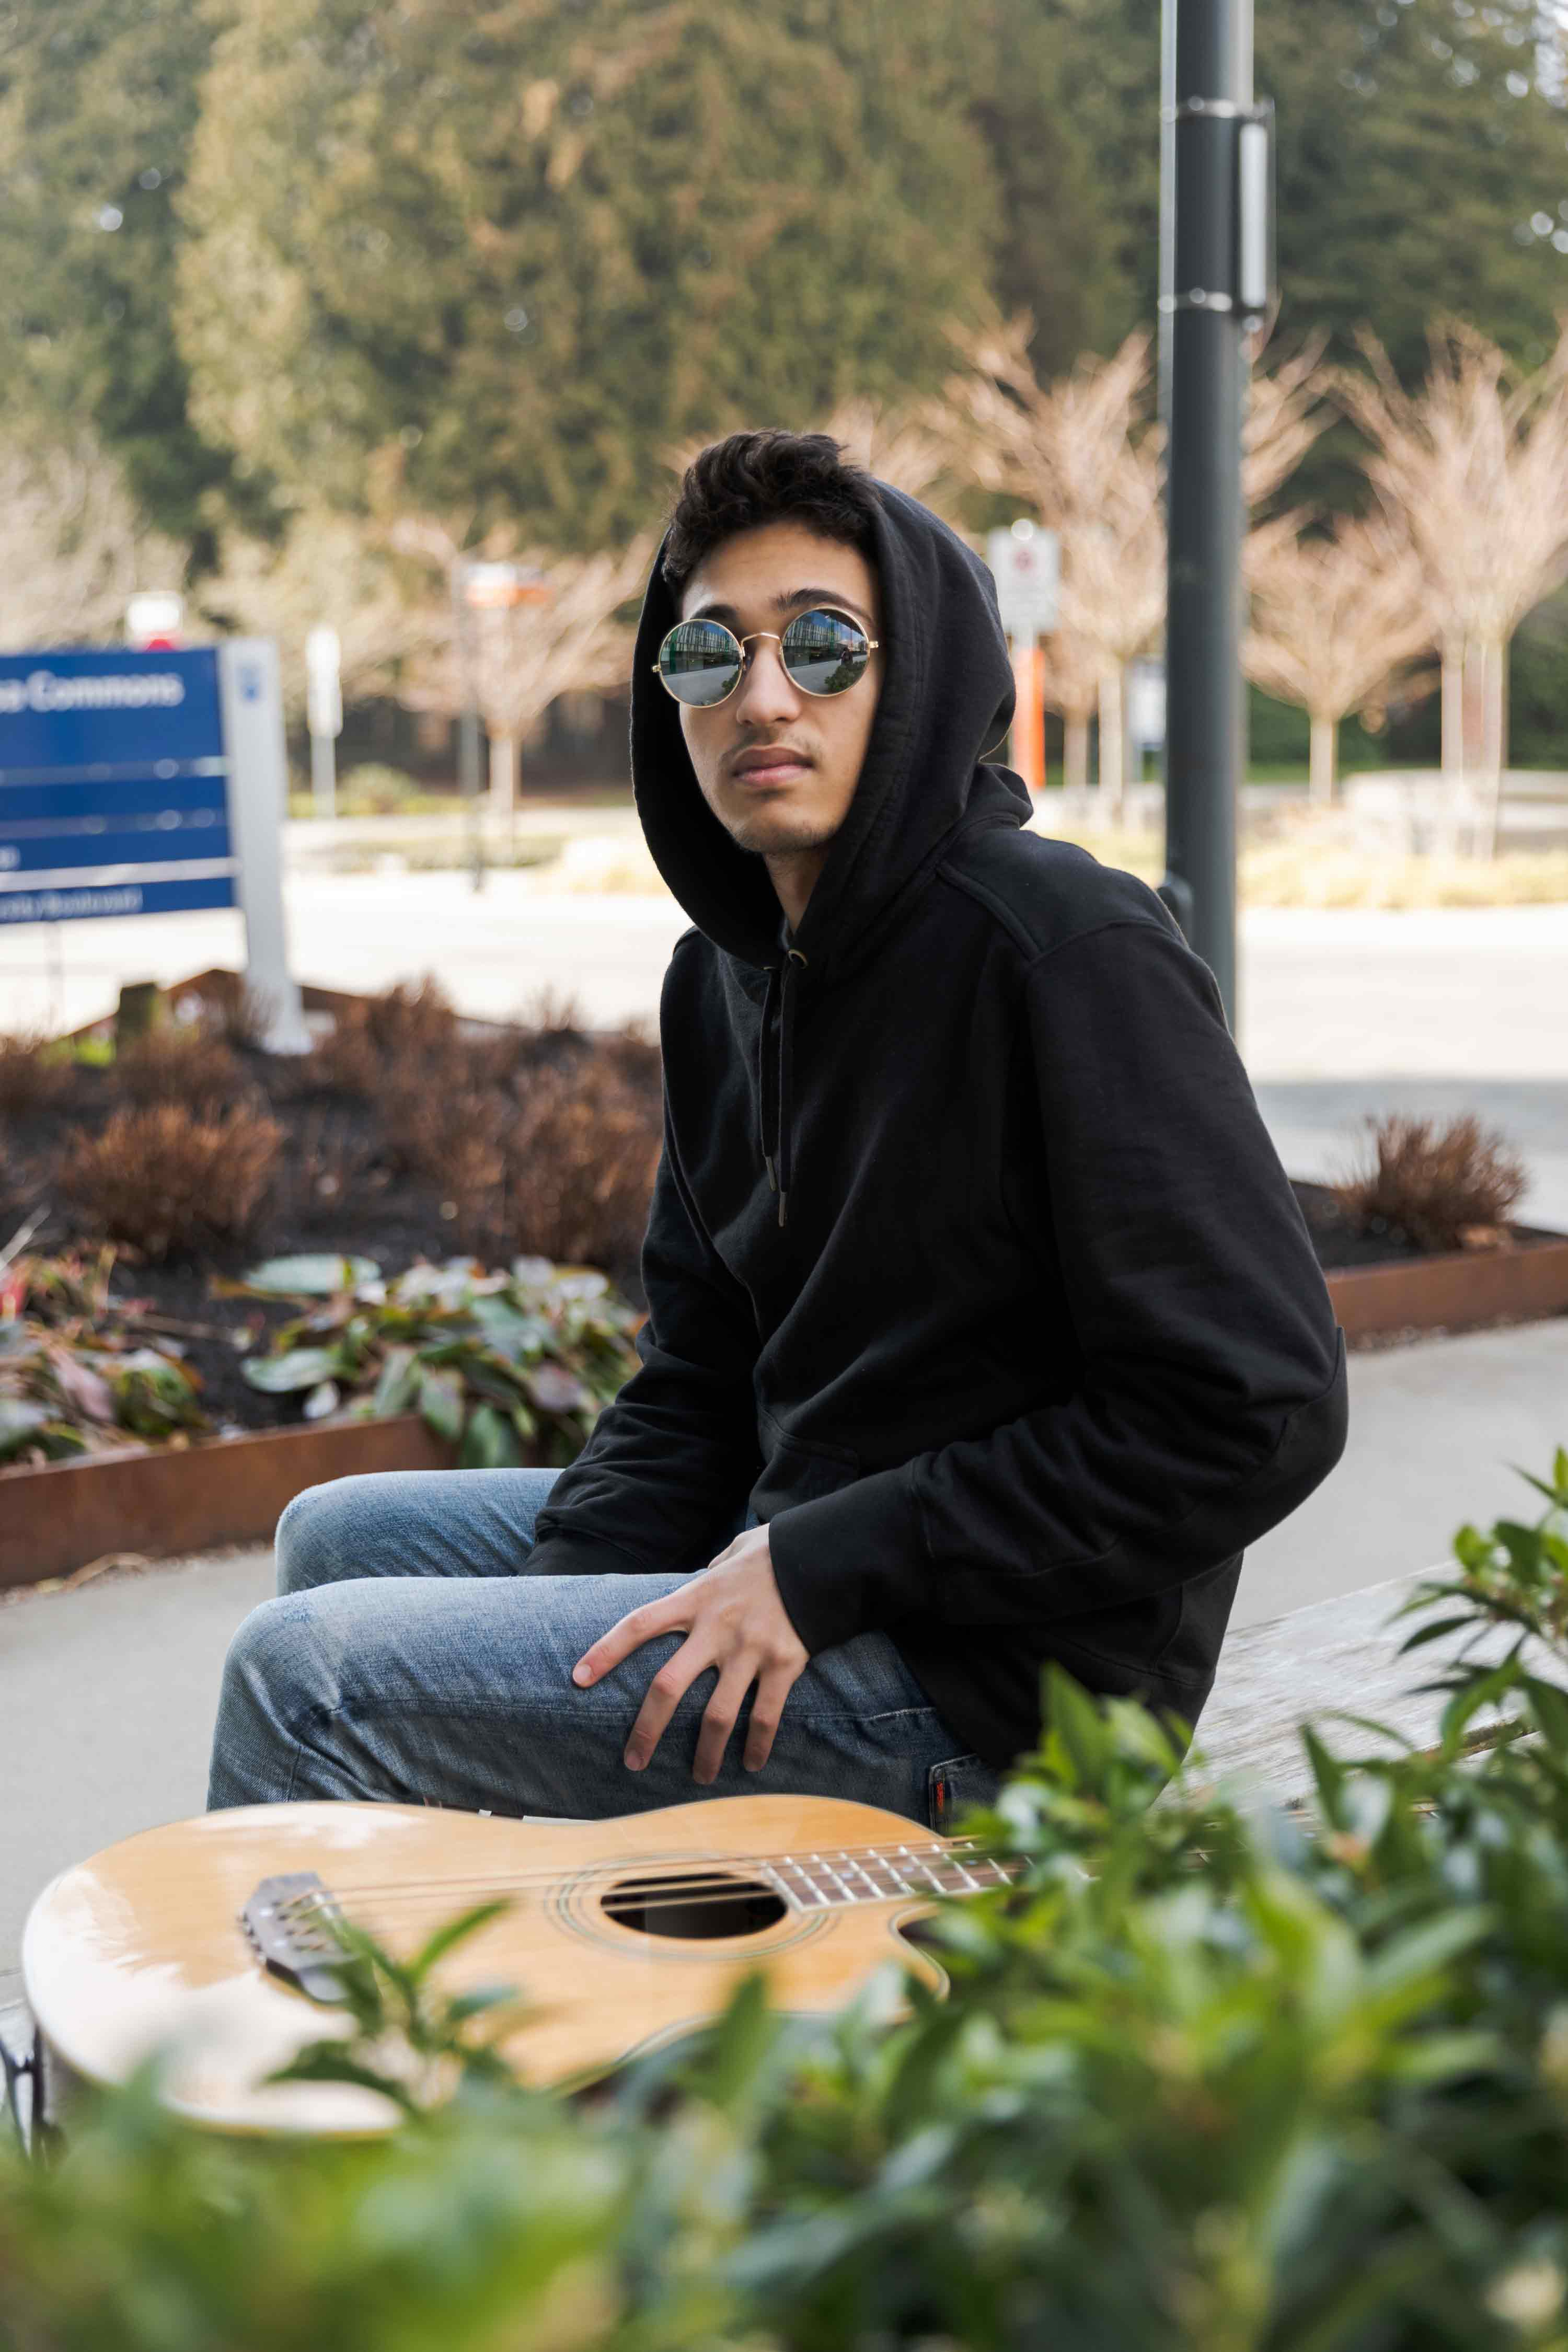 Adel sitting next to his guitar outside of Ponderosa Commons.